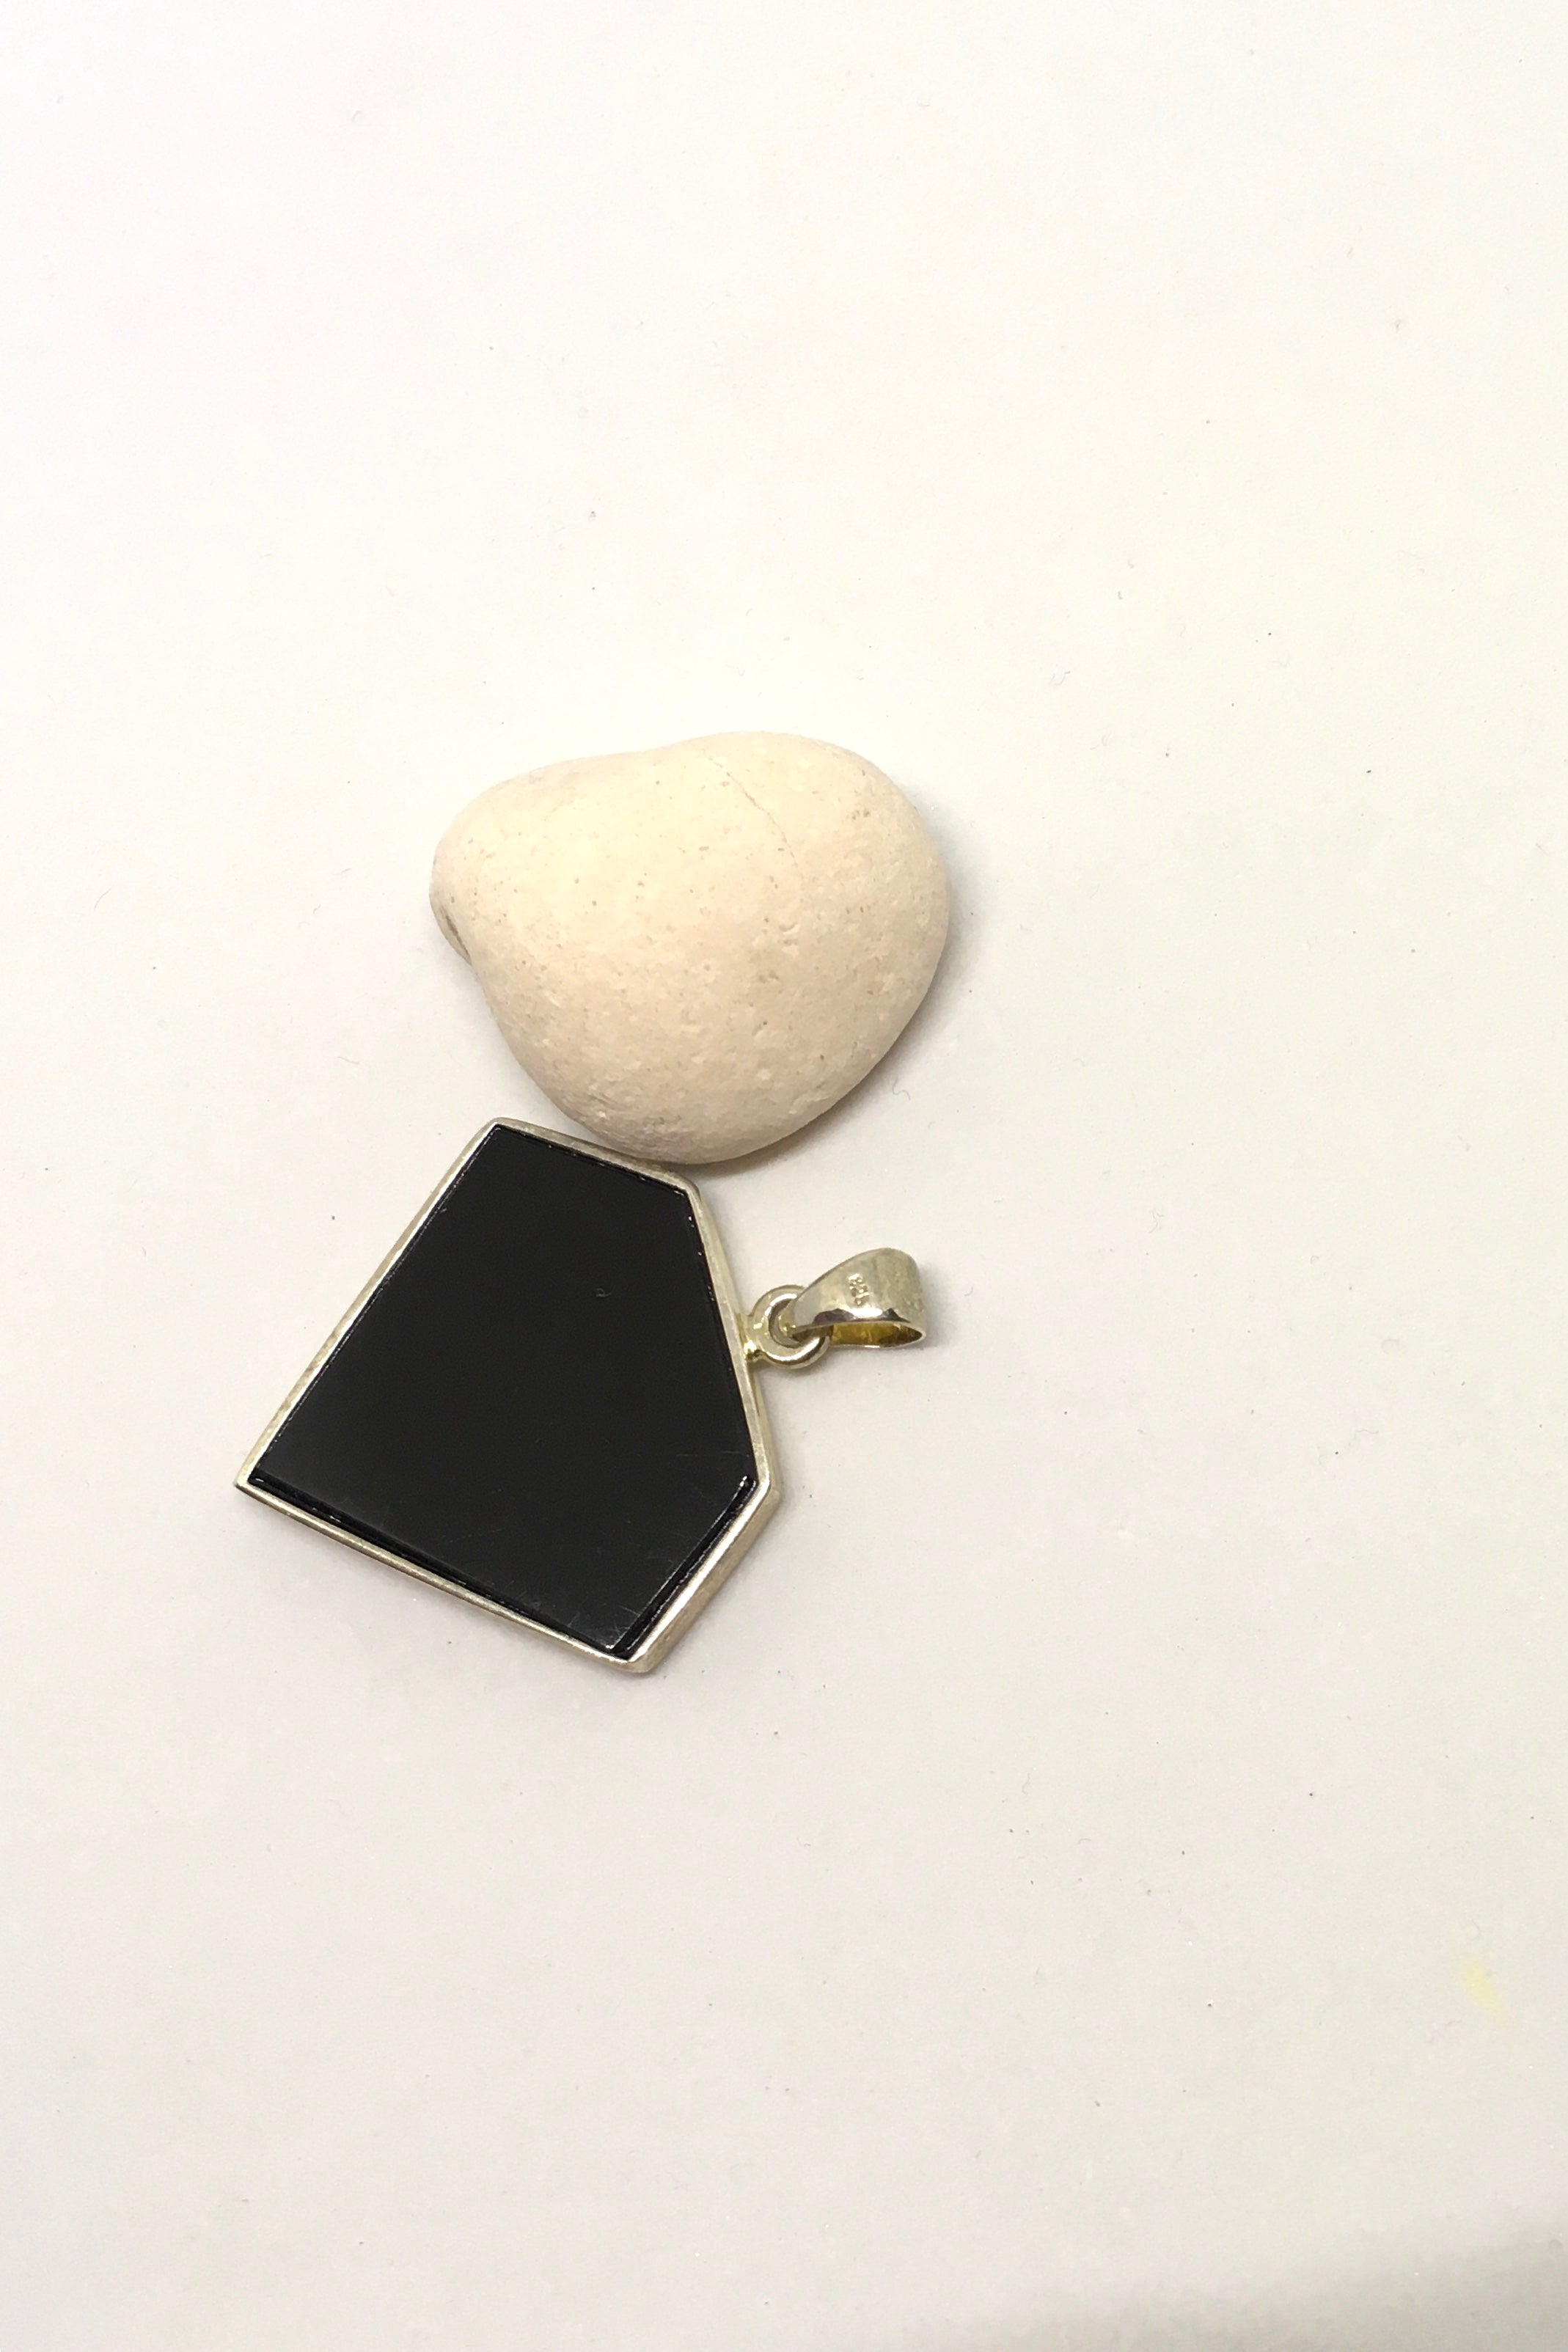 Pendant Heart of Stone and Shell in Diamond shape, inlaid stone pendant